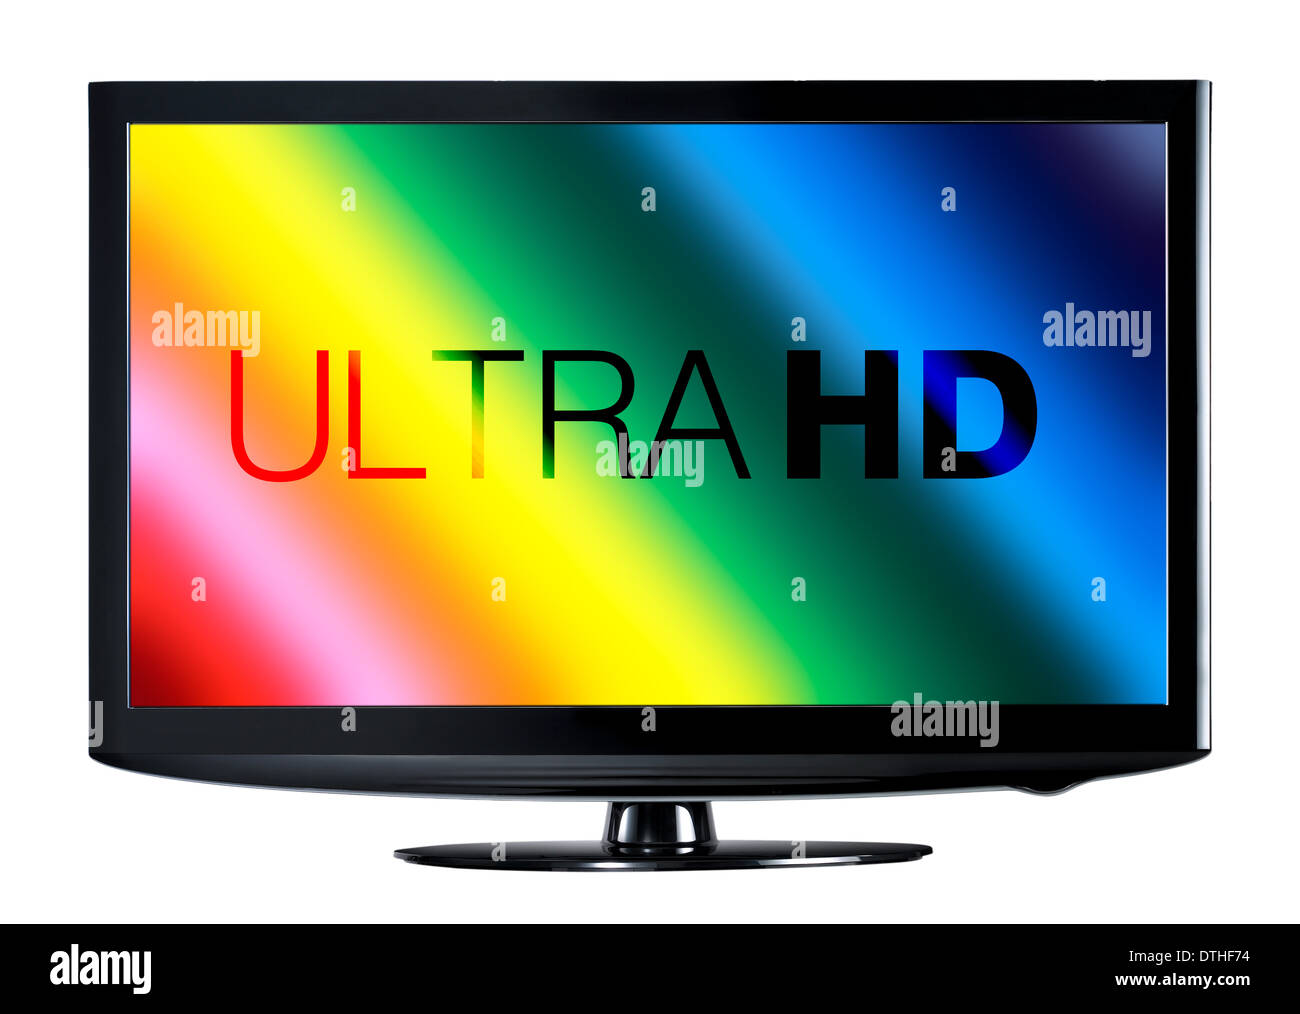 4K television display with comparison of resolutions - Stock Image